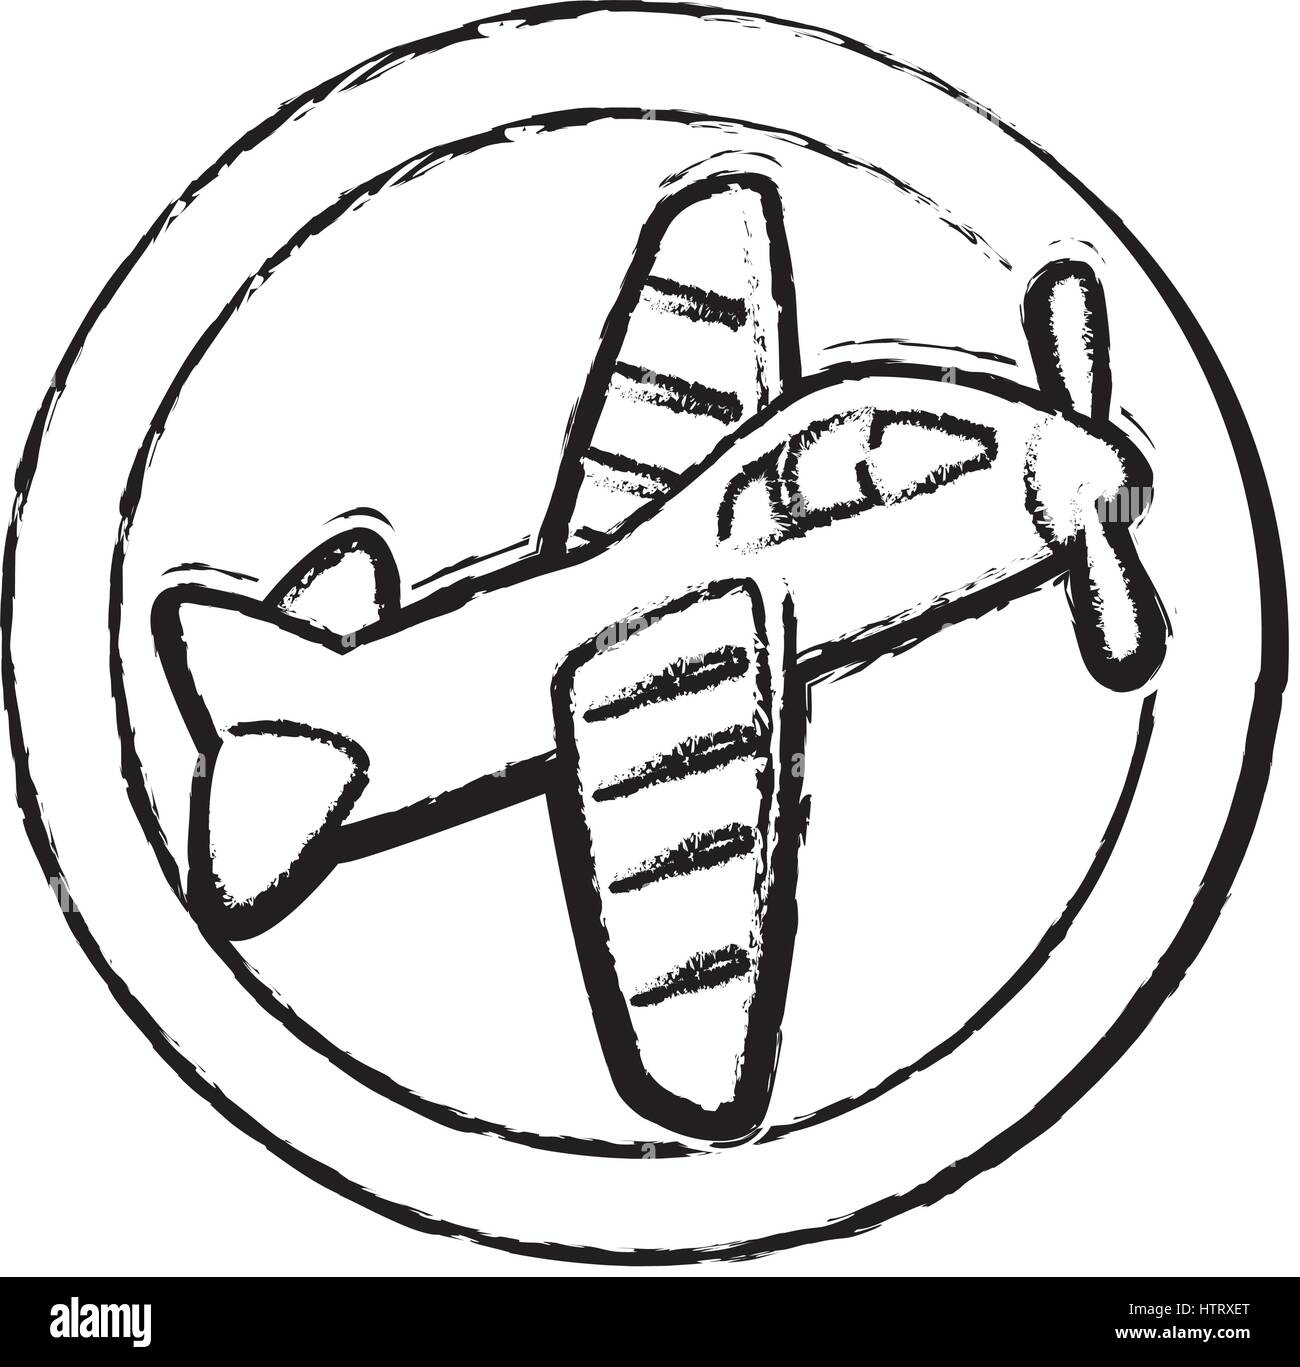 Cute Airplane Toy Icon Stock Vector Image Art Alamy